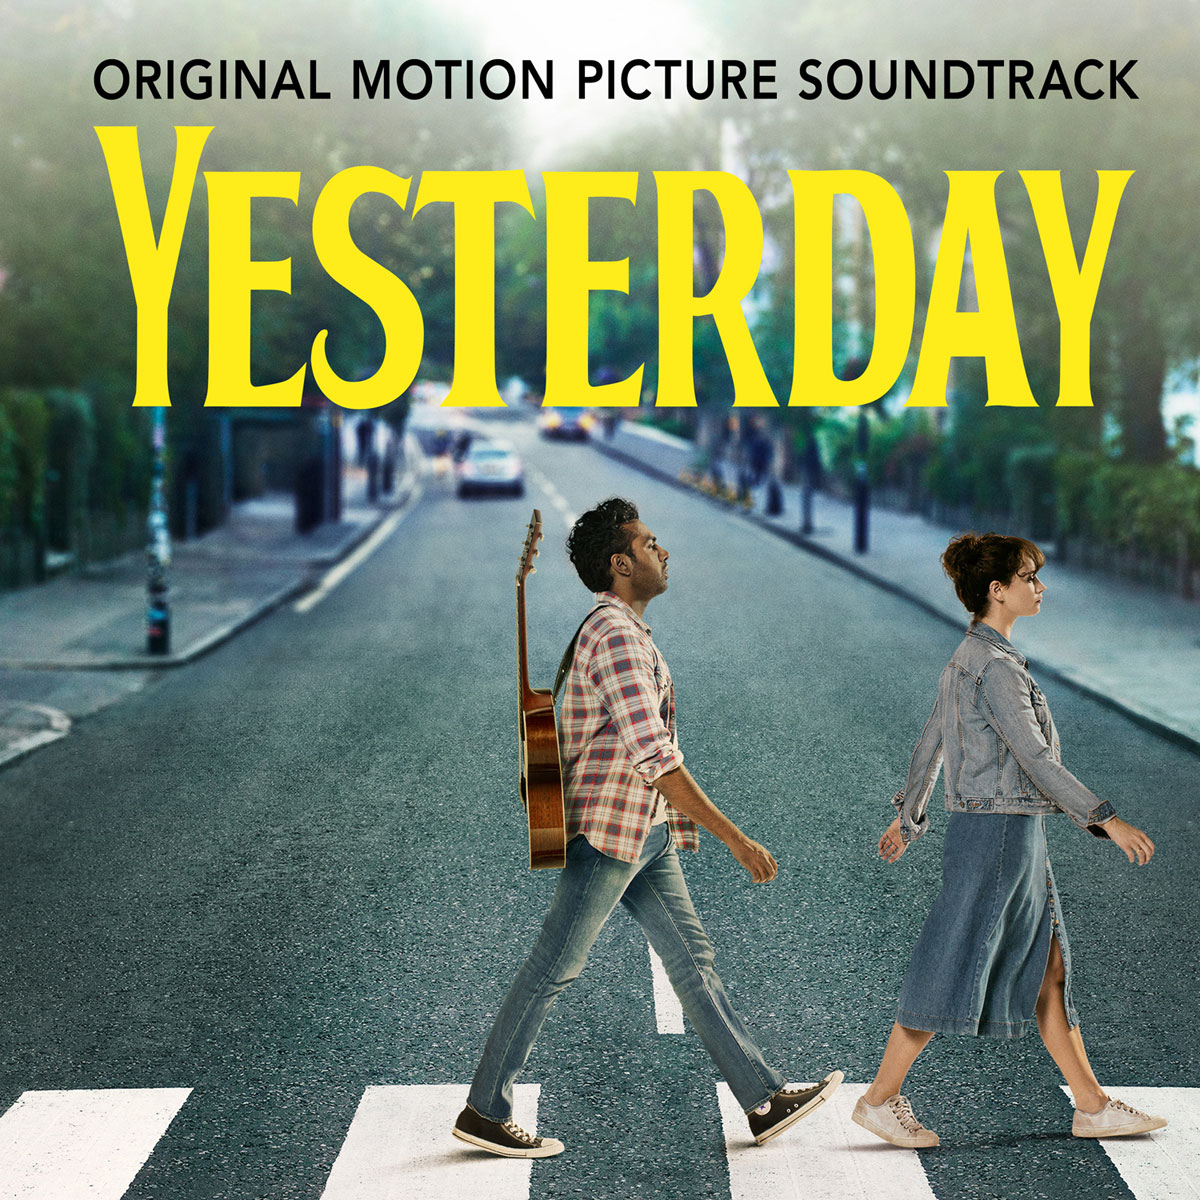 web size Yesterday OST artwork Universal Music